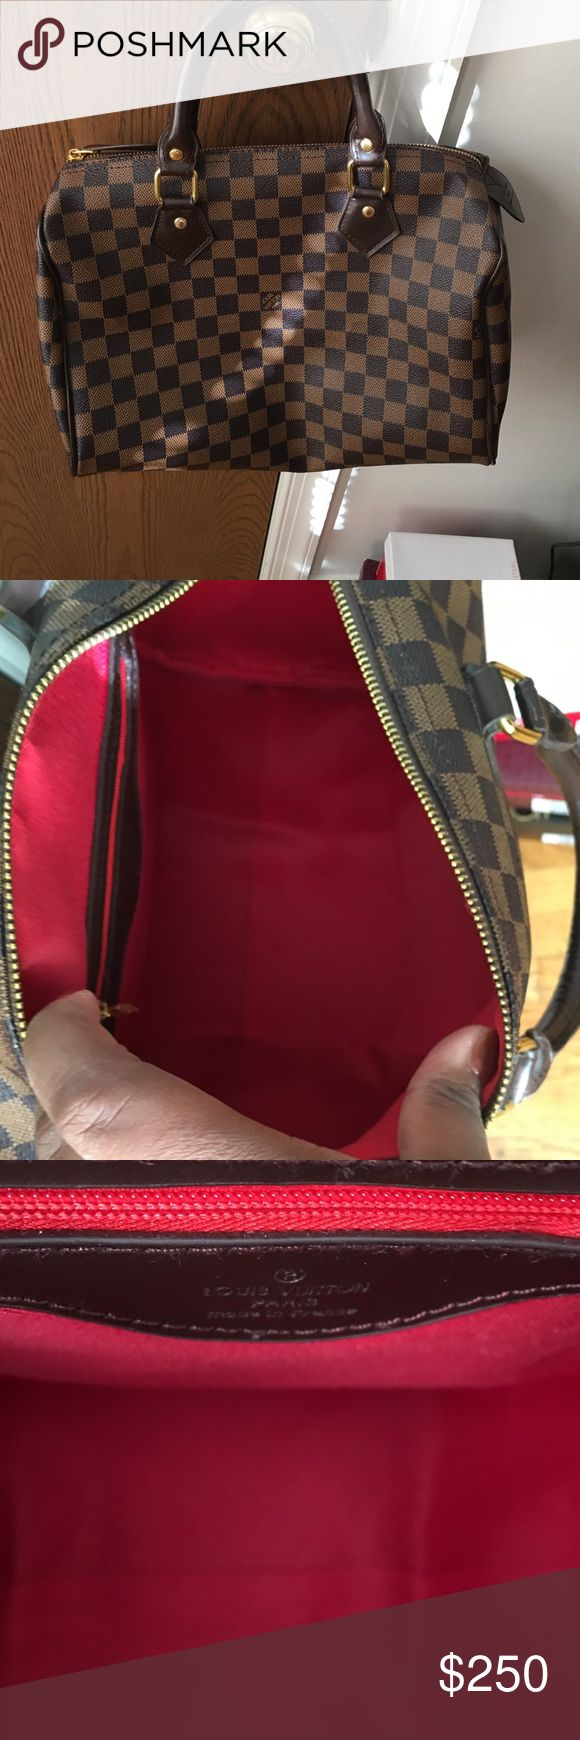 Louis Vuitton Speedy 30 New! Speedy 30 in ebener print. Comes with lock and key. AAA quality! Gorgeous handbag!!❤️❤️❤️ Price negotiable :) Louis Vuitton Bags Totes